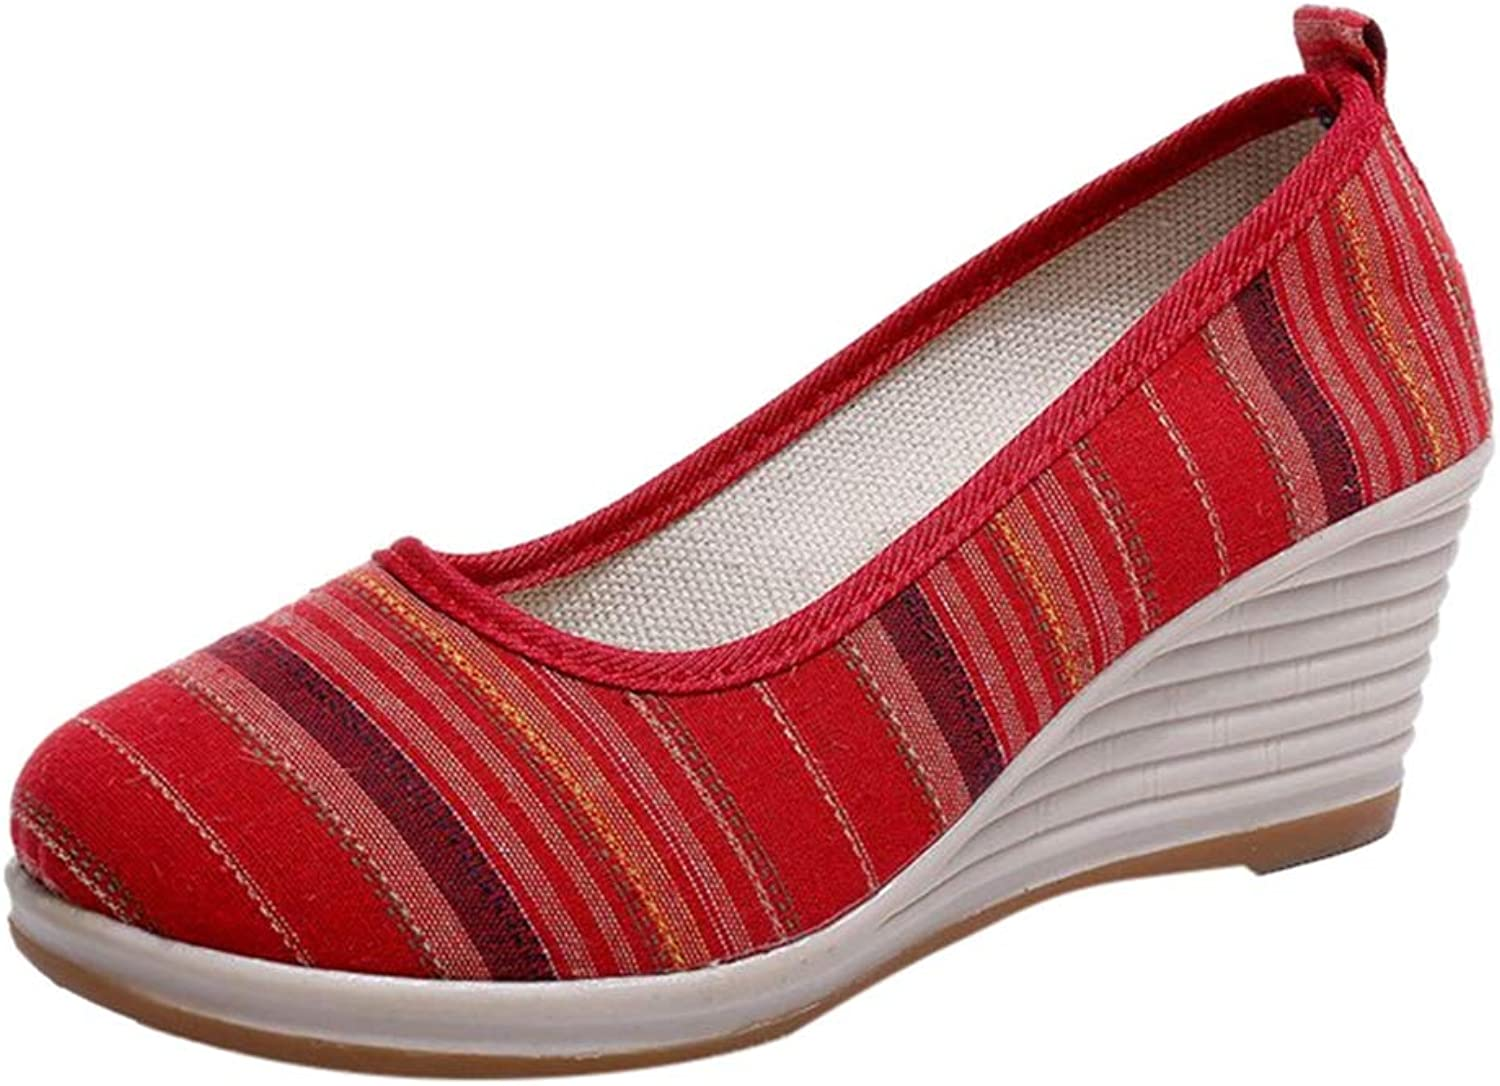 T-JULY Women Striped Round Toe Wedges Ethnic Style Loafers Casual Wedge Single Sneakers